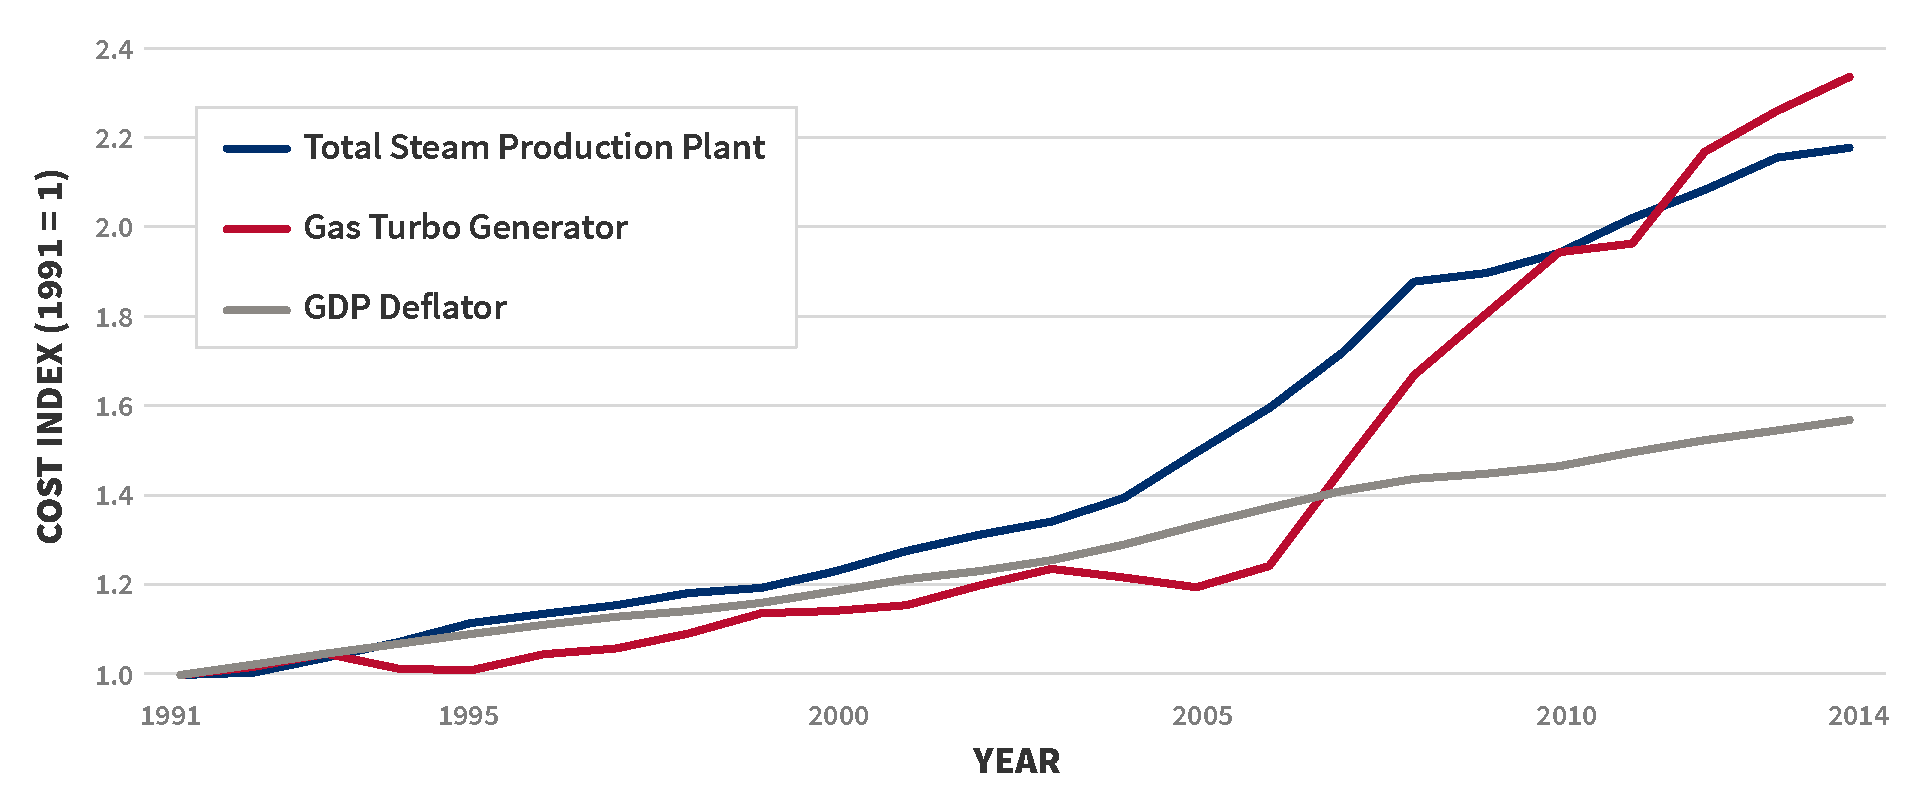 From 1991–2004, total steam production plant, gas turbo generator and GDP deflator all rise together at roughly the same gradual linear rate to approximately 1.3 times 1991 values. After 2004, GDP deflator continues to rise at the previous rate to almost 1.6 times 1991 values by 2014, while total steam production plant shifts to a steeper increase reaching almost 2.2 times 1991 values by 2014. After 2006, gas turbo generator begins a dramatic rate of increase, surpassing total steam production plant by 2012 and exceeding 2.3 times 1991 values by 2014.